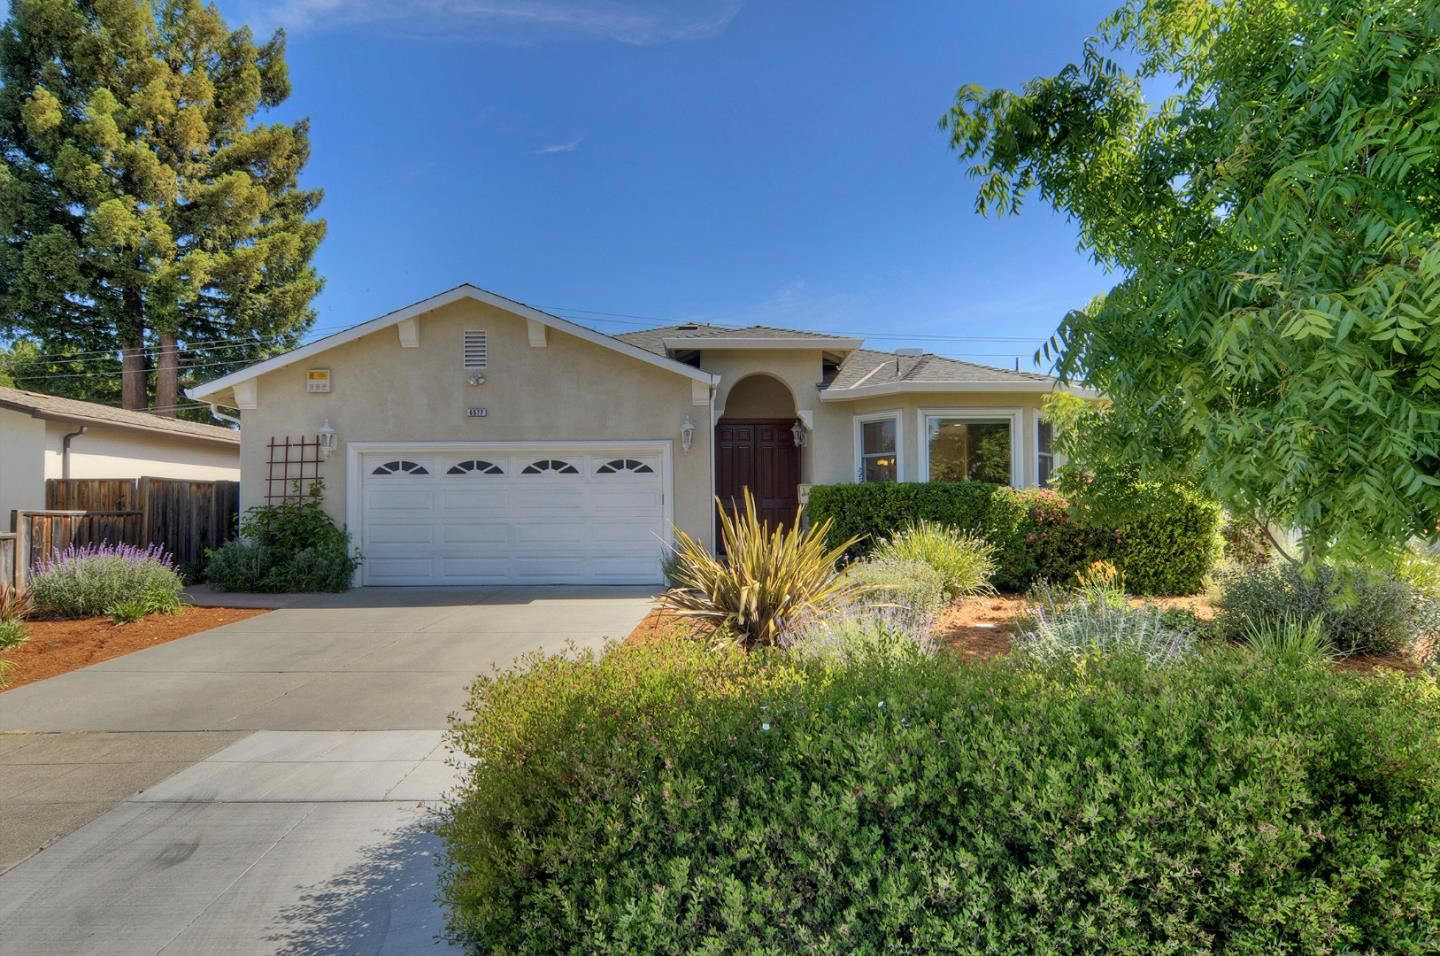 Photo for 6577 Clifford Drive, CUPERTINO, CA 95014 (MLS # ML81847994)